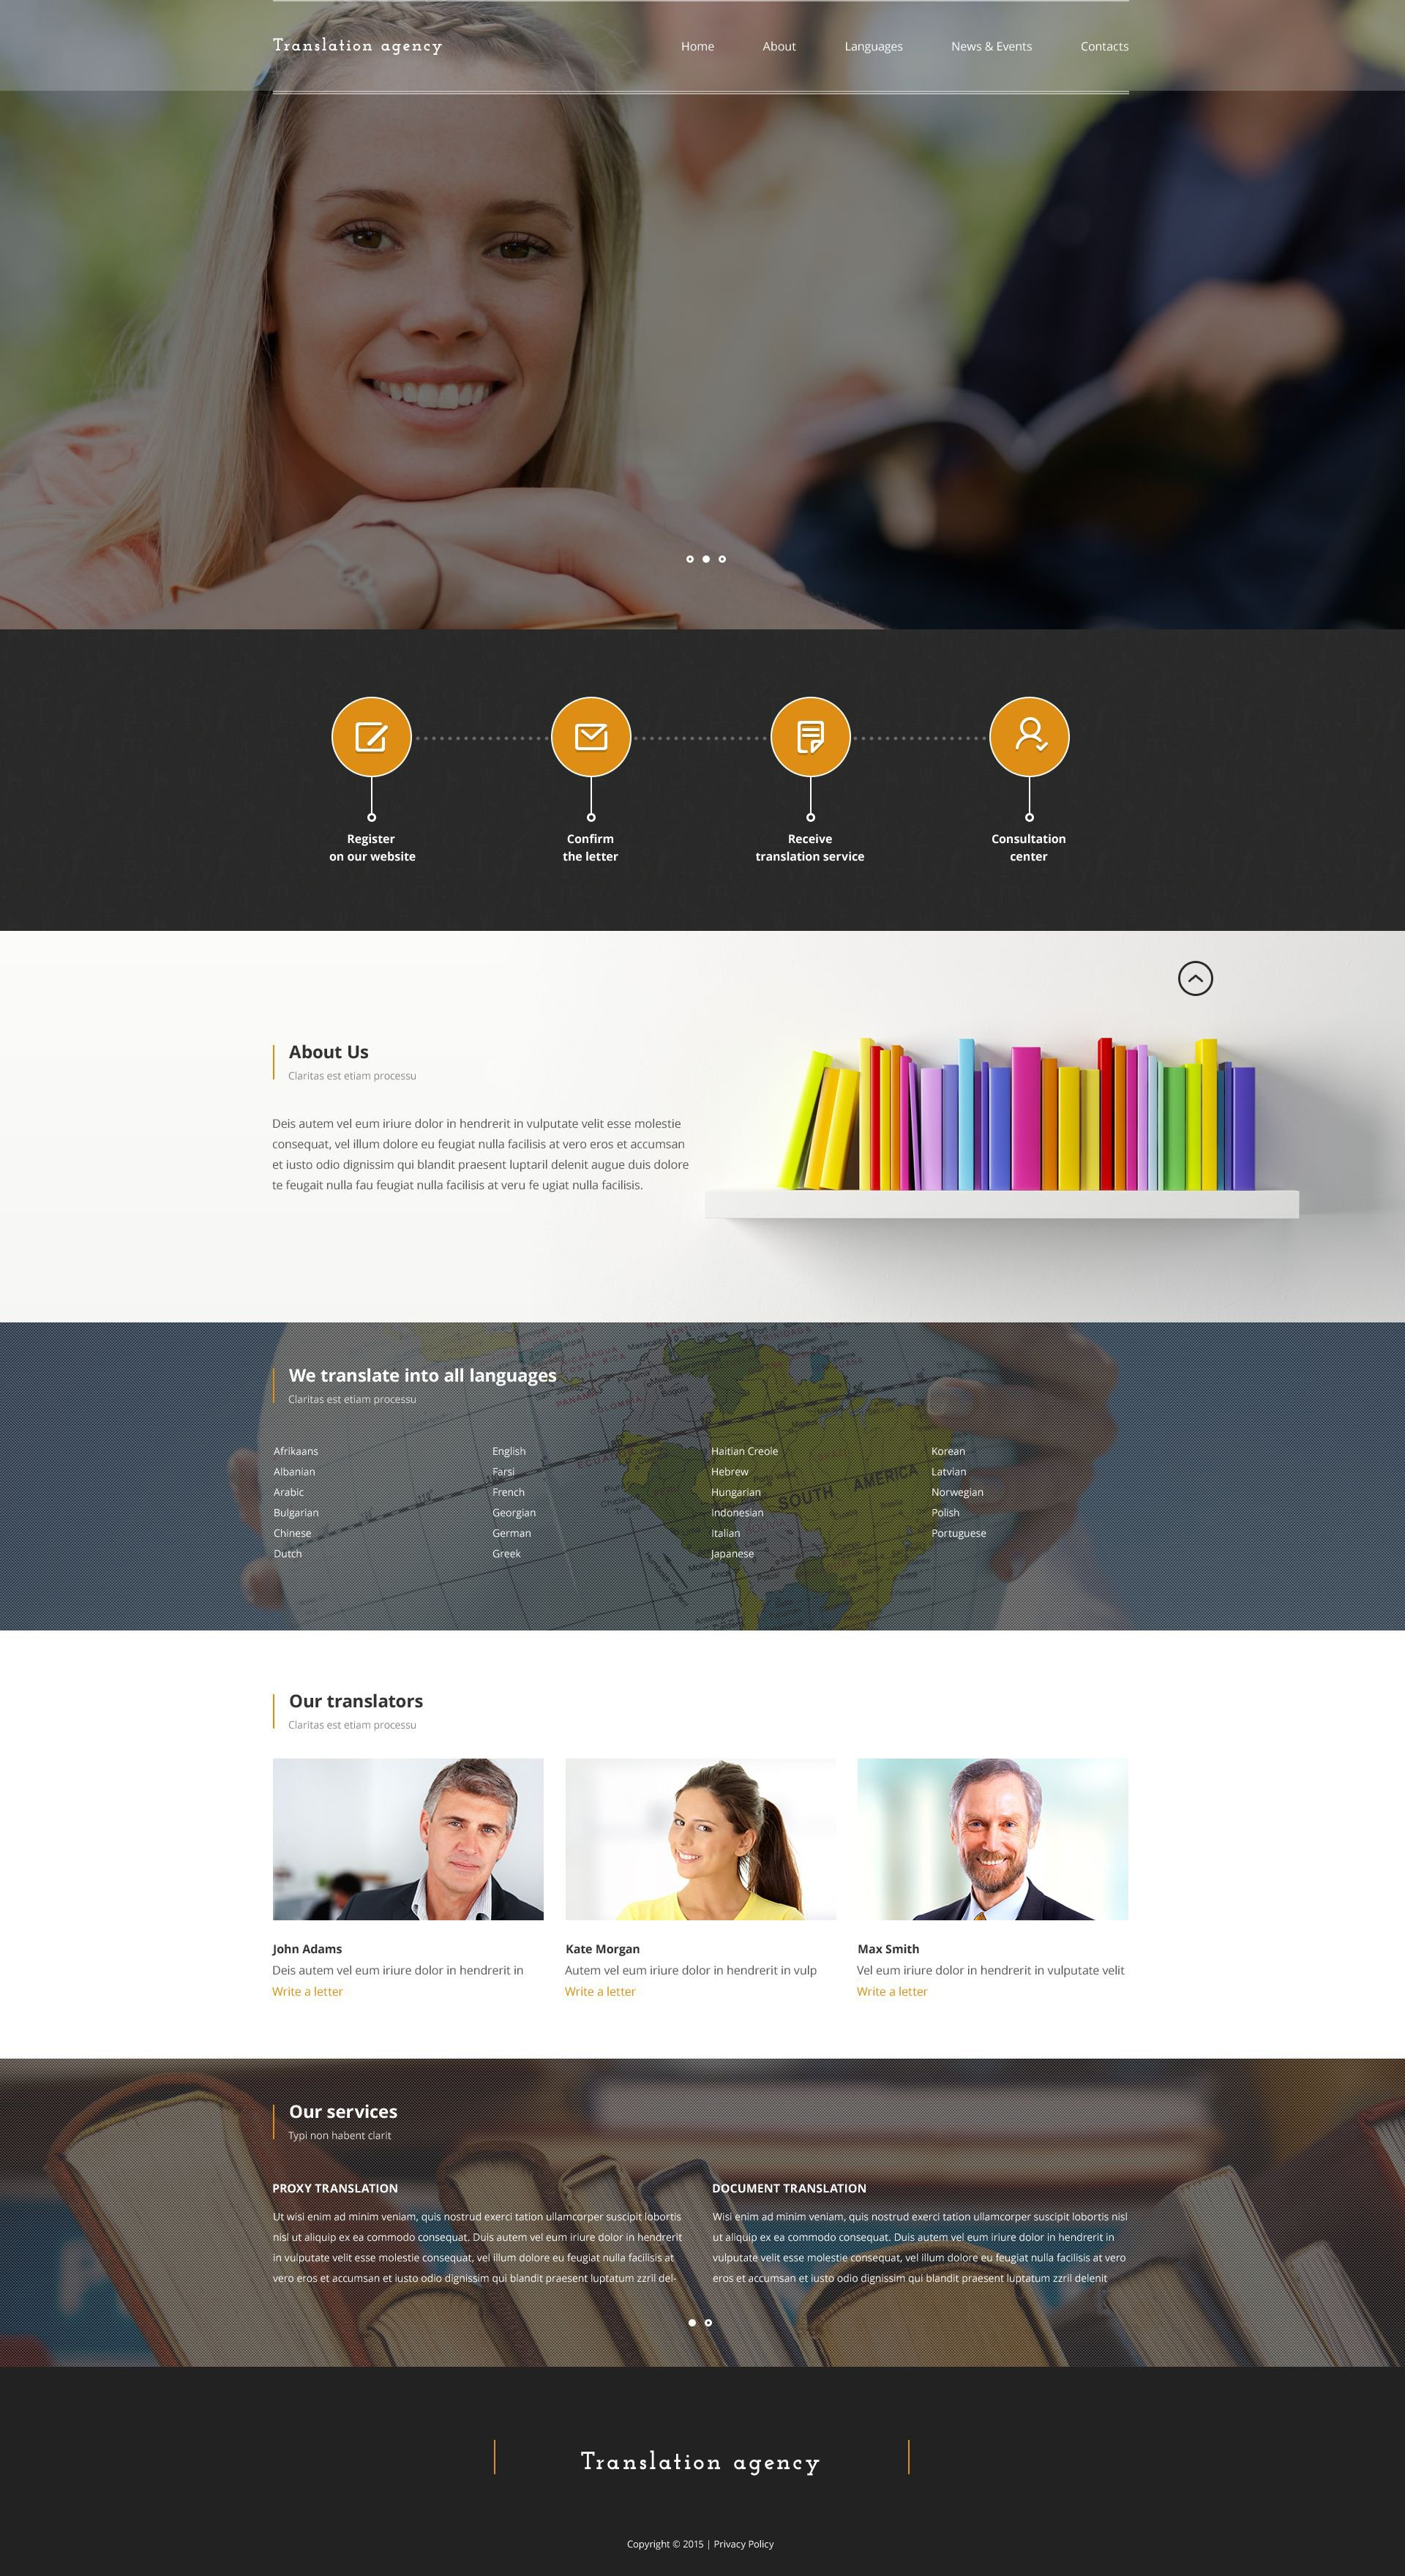 The Translate Company Bootstrap Design 53150, one of the best website templates of its kind (business, most popular), also known as translate company website template, professional website template, translation website template, services company website template, prices website template, team solutions website template, business website template, success website template, enterprise website template, technical website template, clients website template, customer support and related with translate company, professional, translation, services company, prices, team solutions, business, success, enterprise, technical, clients, customer support, etc.